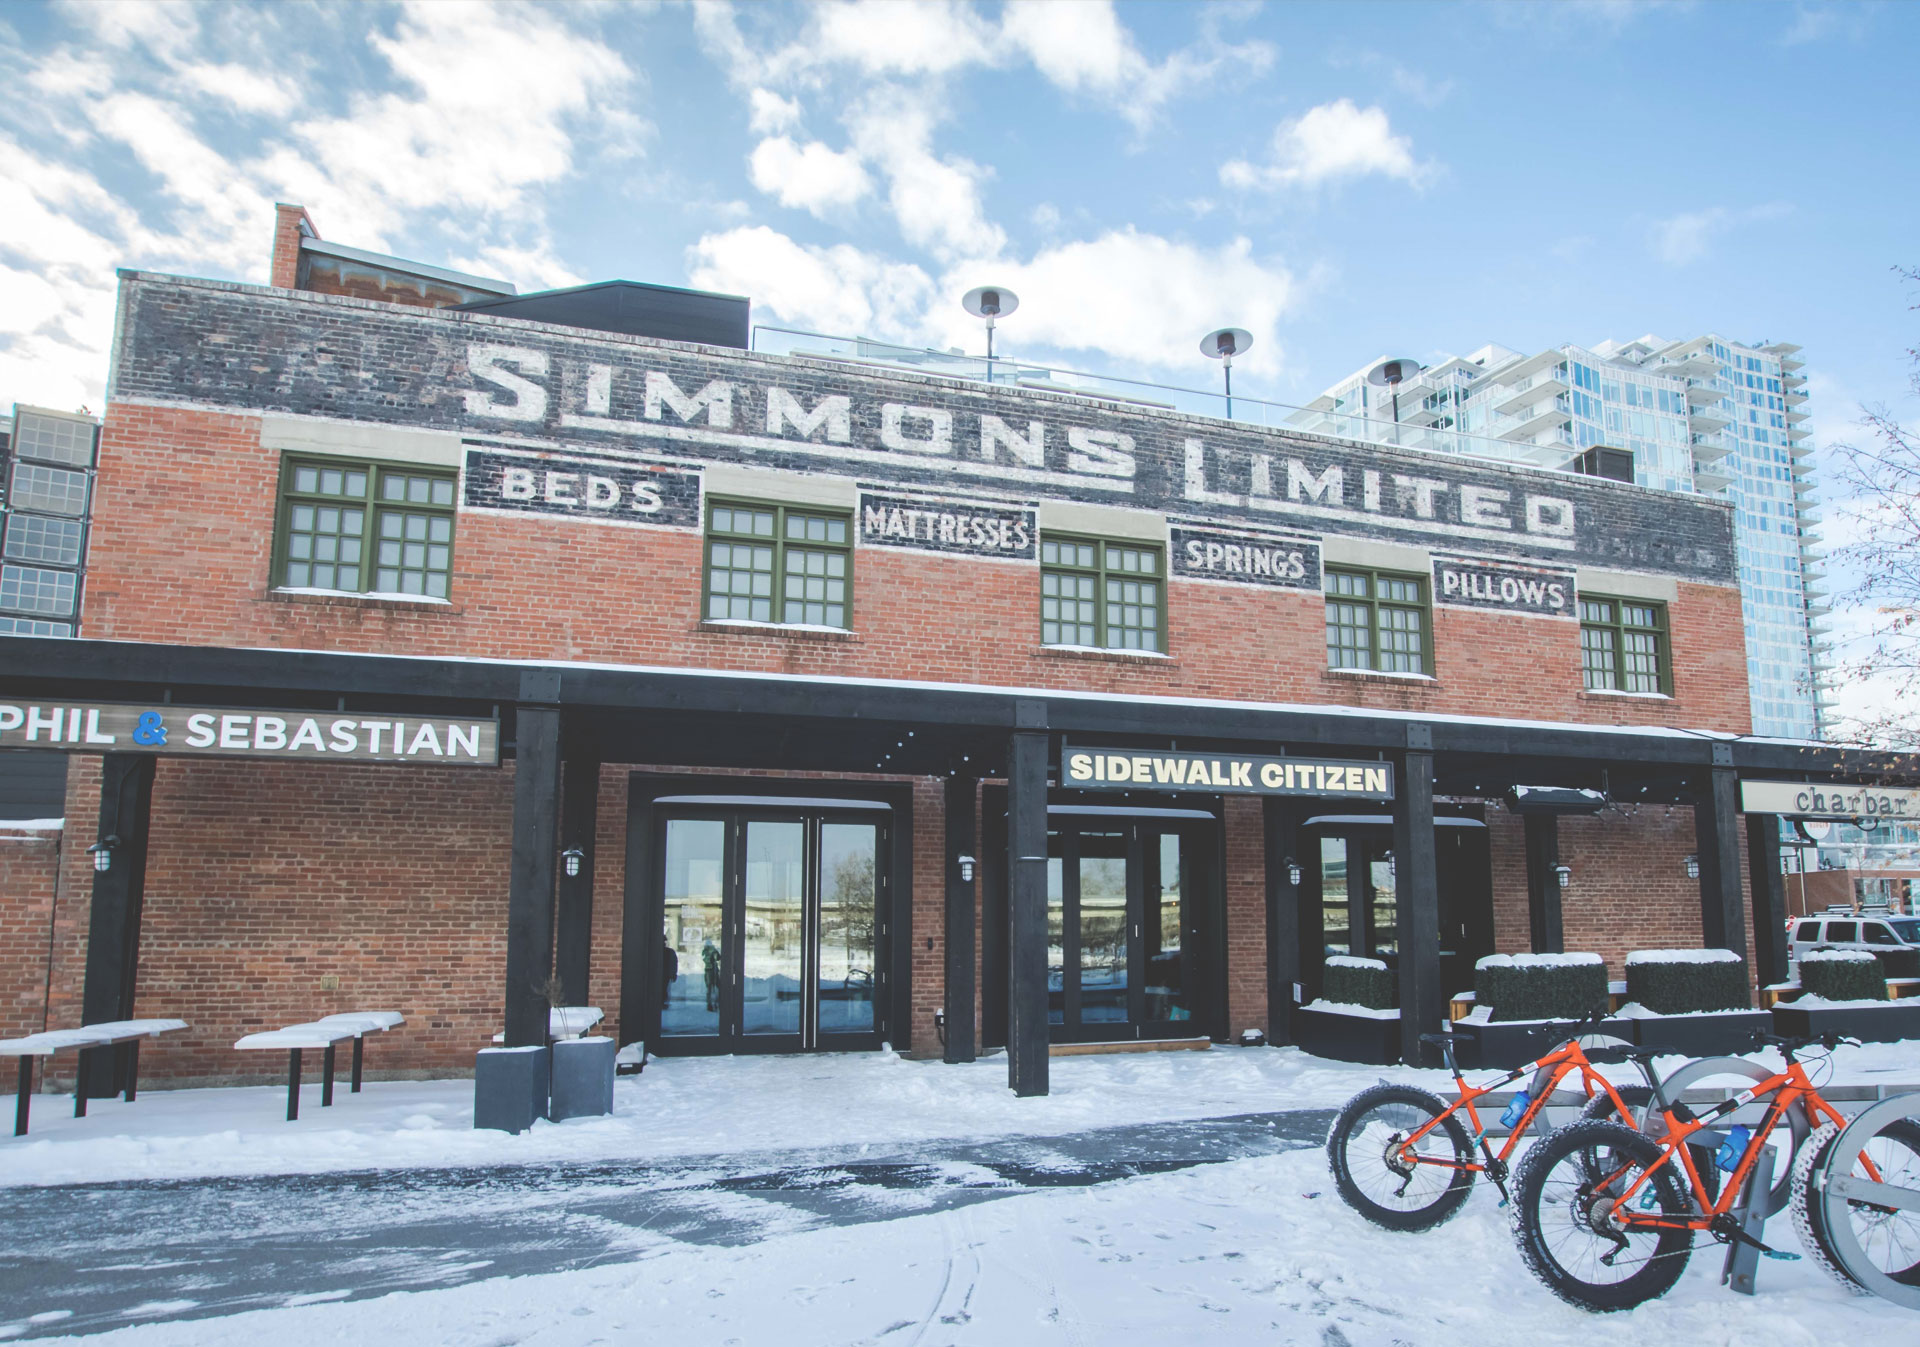 The Simmons Building along the River Walk features great food and drinks for a pit stop